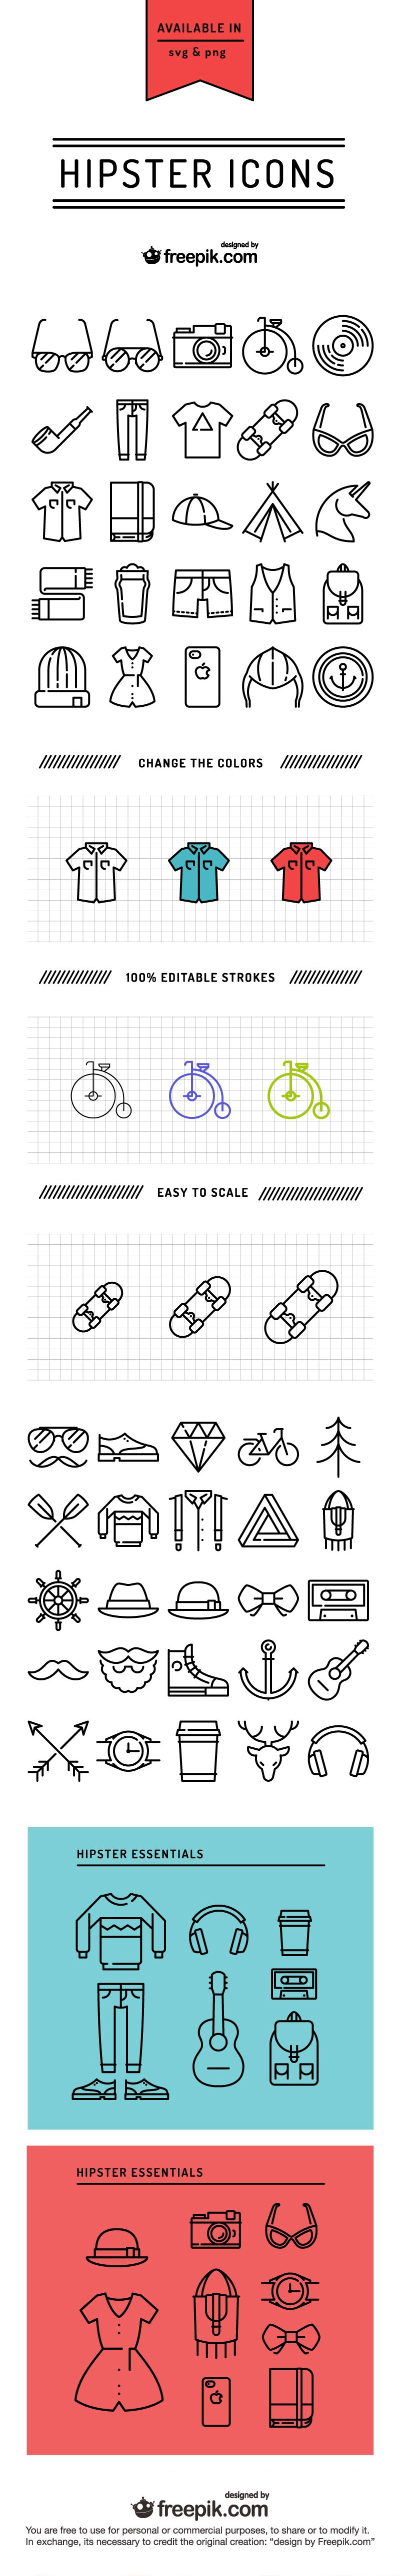 Free Hipster Icons Designed by Icons Icon